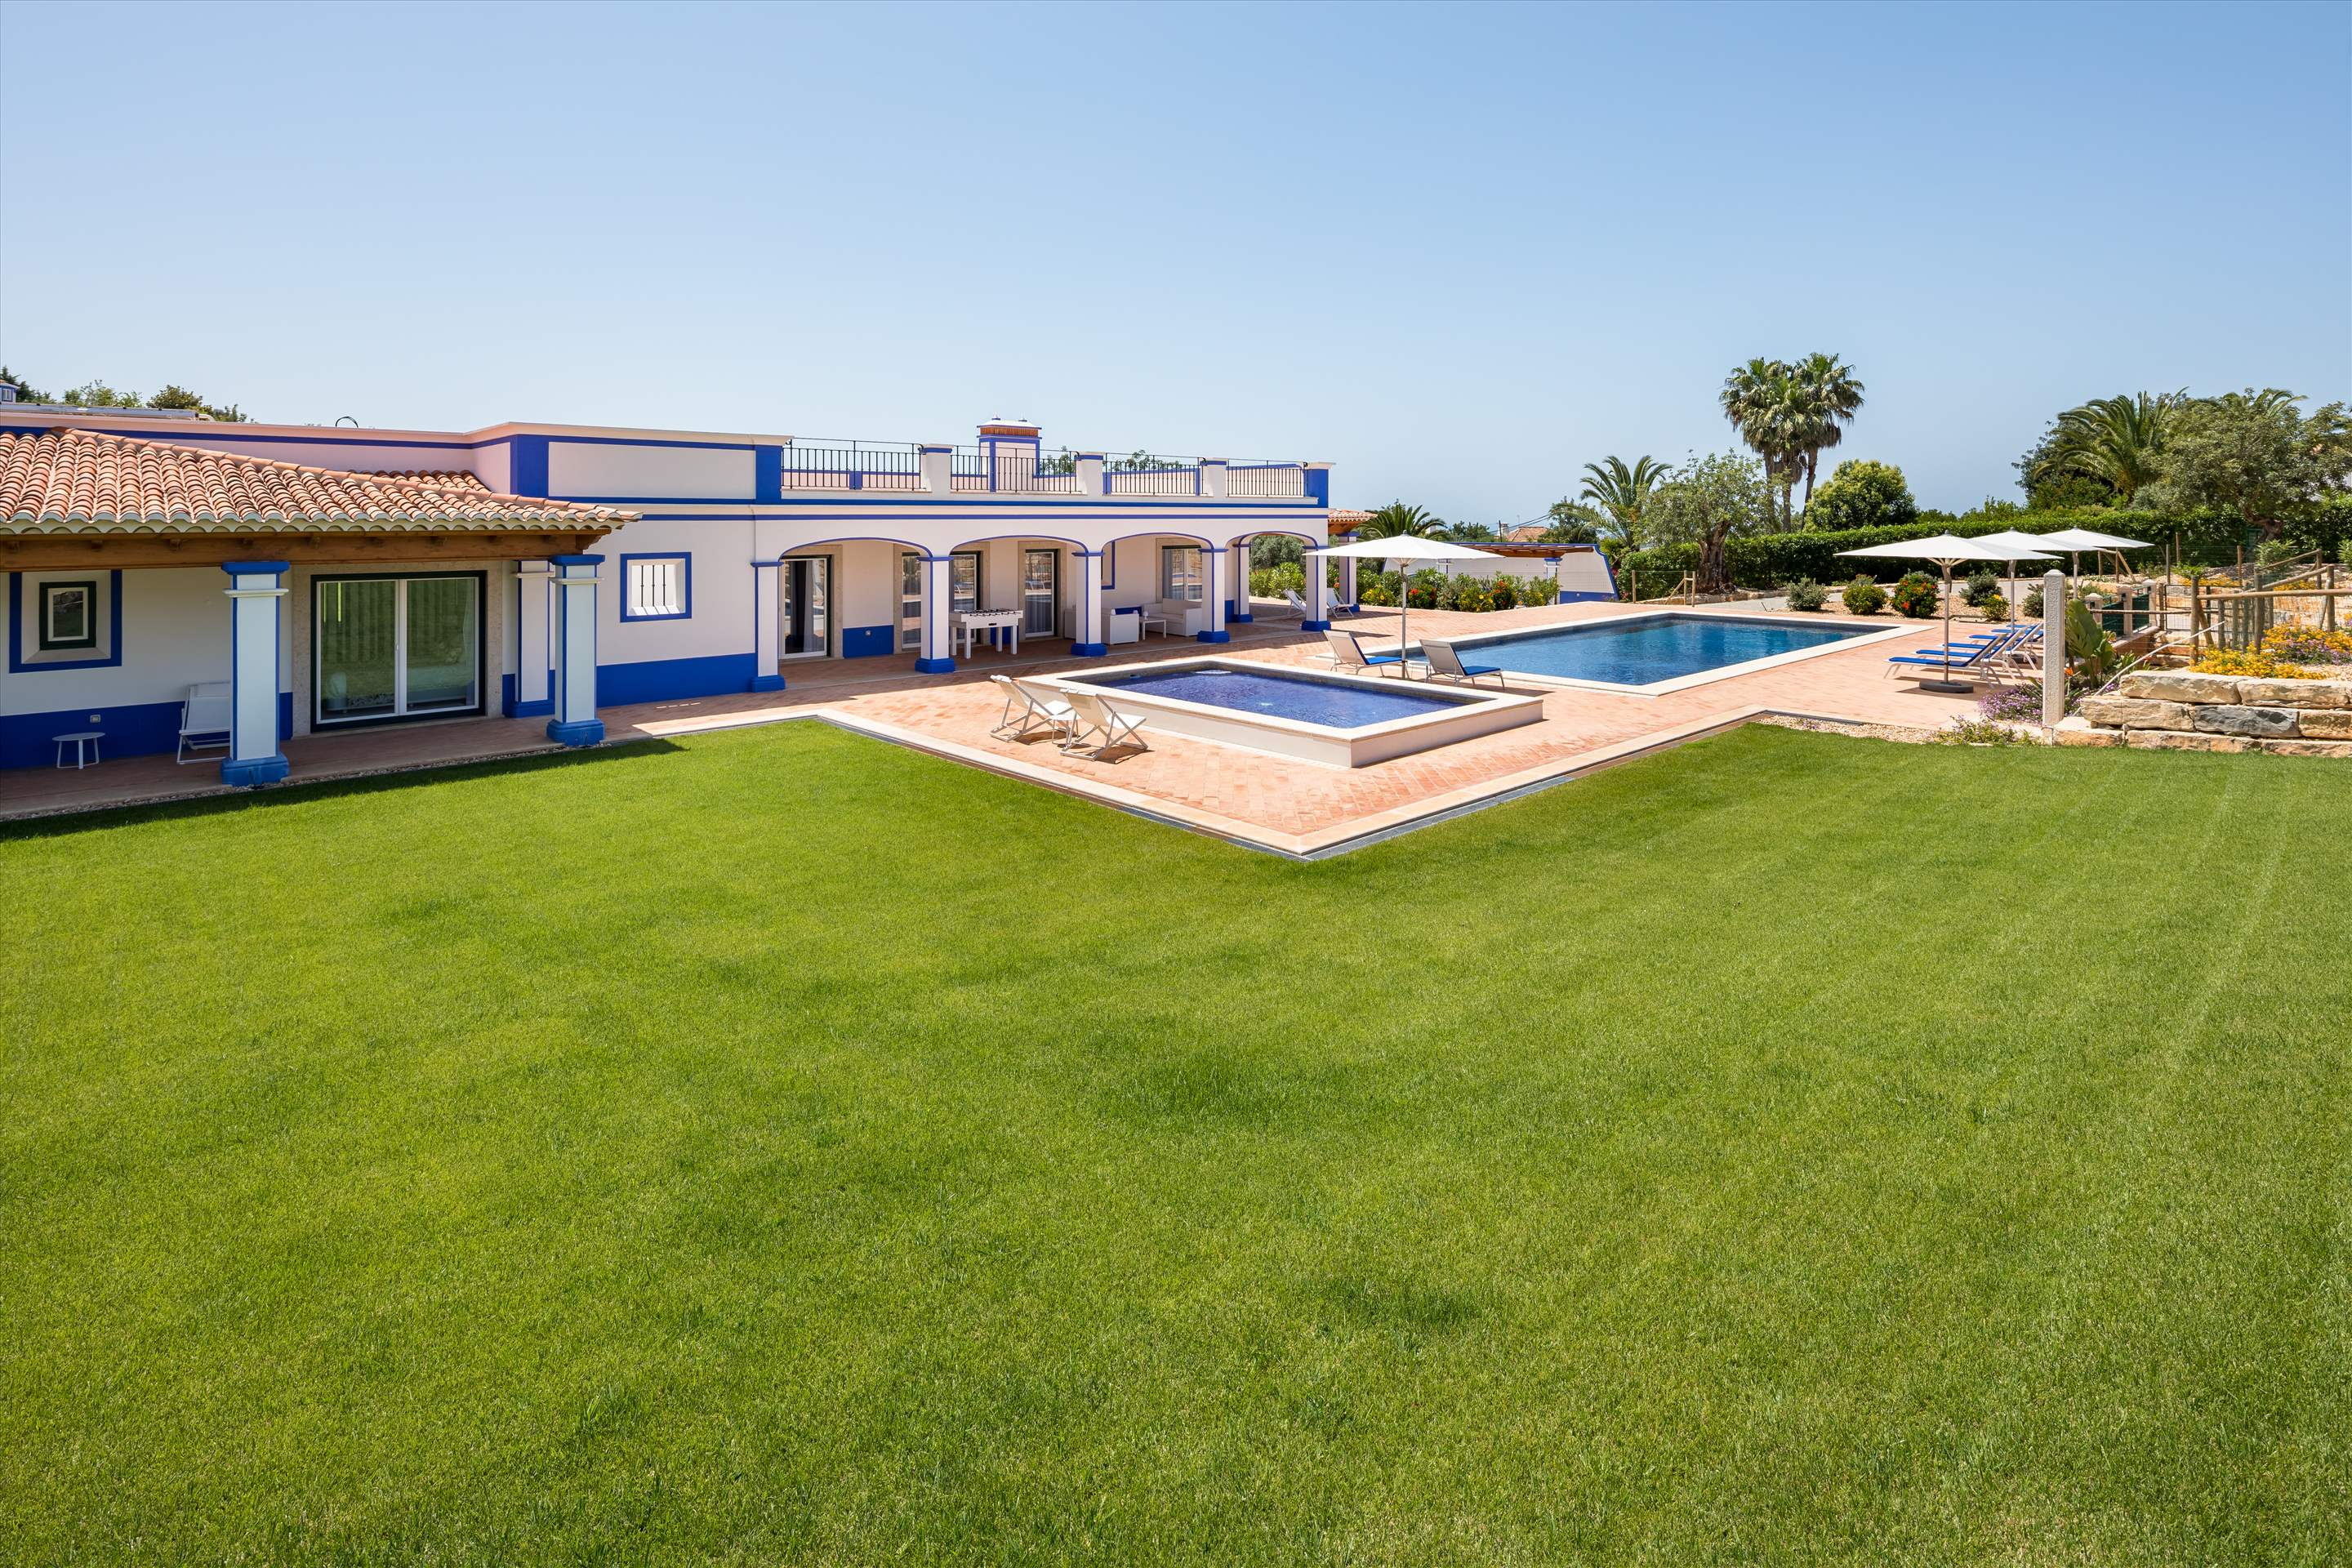 Villa Sky, 4 bedroom villa in Vilamoura Area, Algarve Photo #11